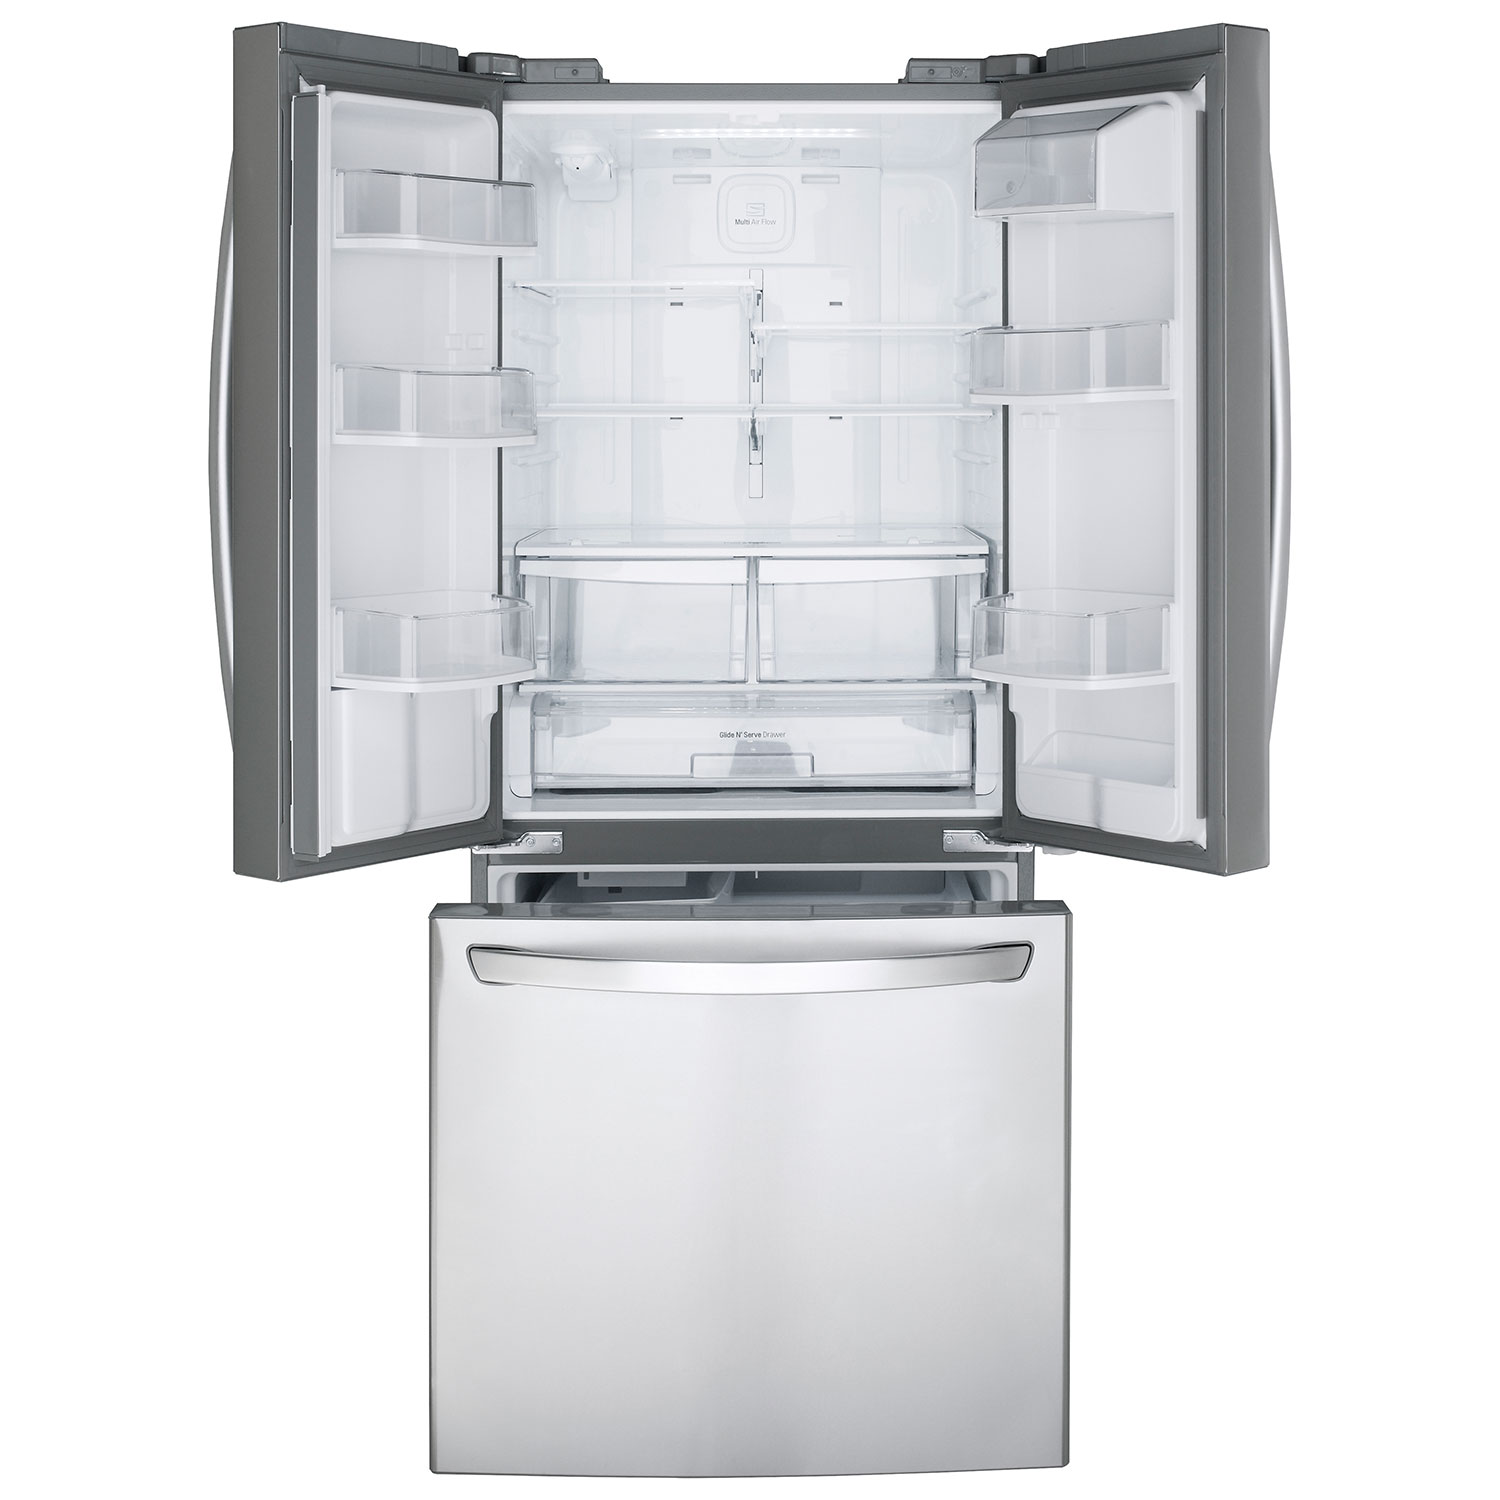 Ft. French Door Refrigerator (LFD22786ST)   Stainless Steel : French Door  Refrigerators   Best Buy Canada